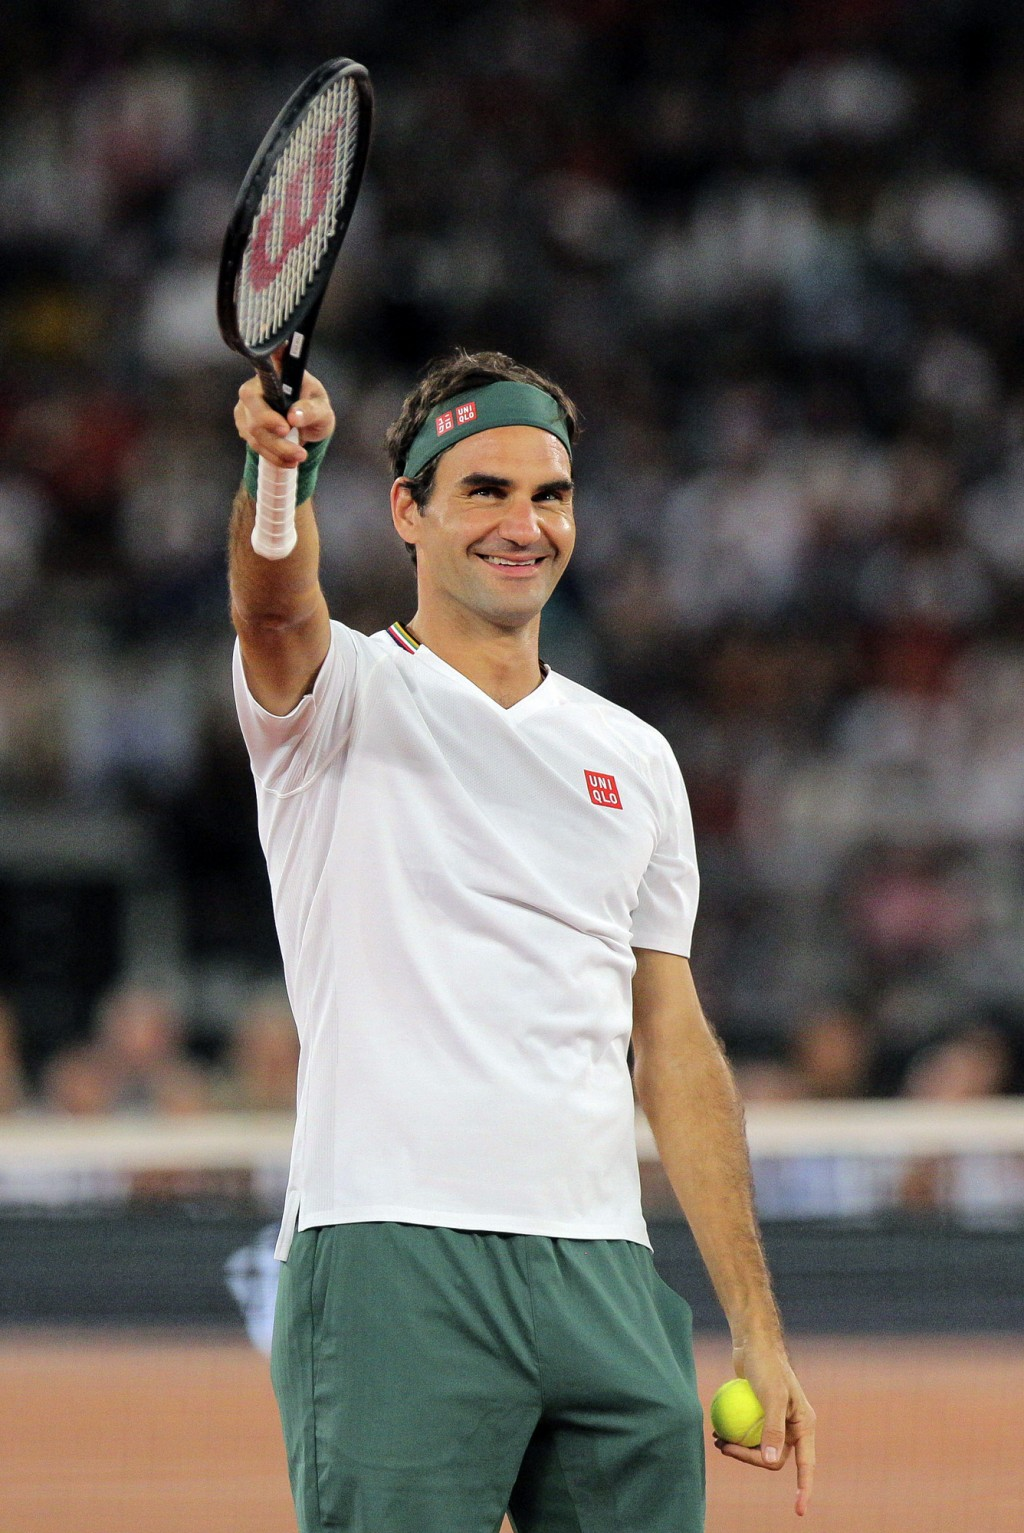 Roger Federer waves at the crowd during the exhibition tennis match against Rafael Nadal held at the Cape Town Stadium in Cape Town, South Africa, Fri...